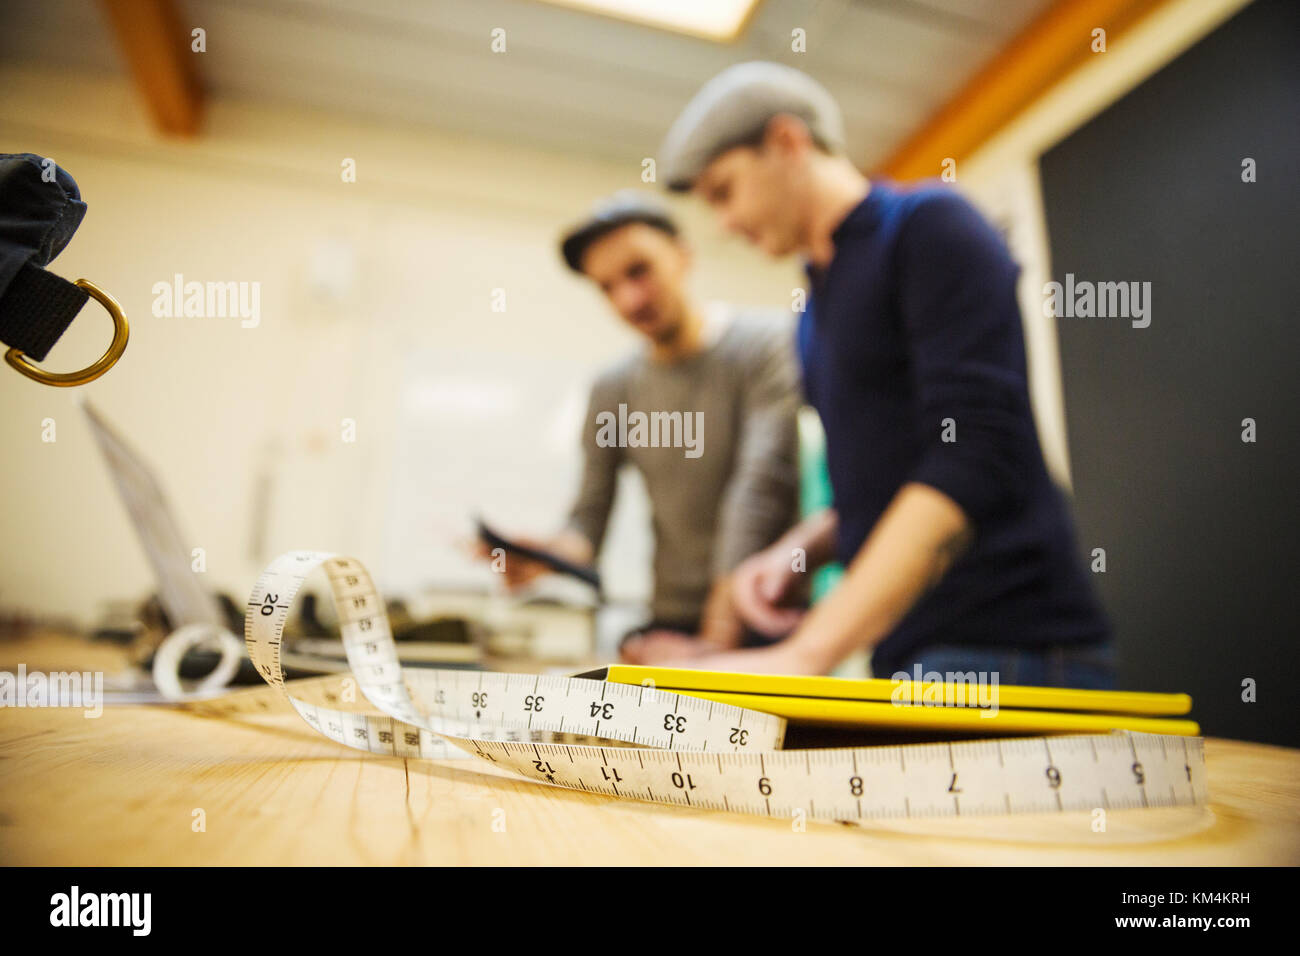 Two men at a workbench, using a digital tablet and laptop, a measuring tape in the foreground. - Stock Image